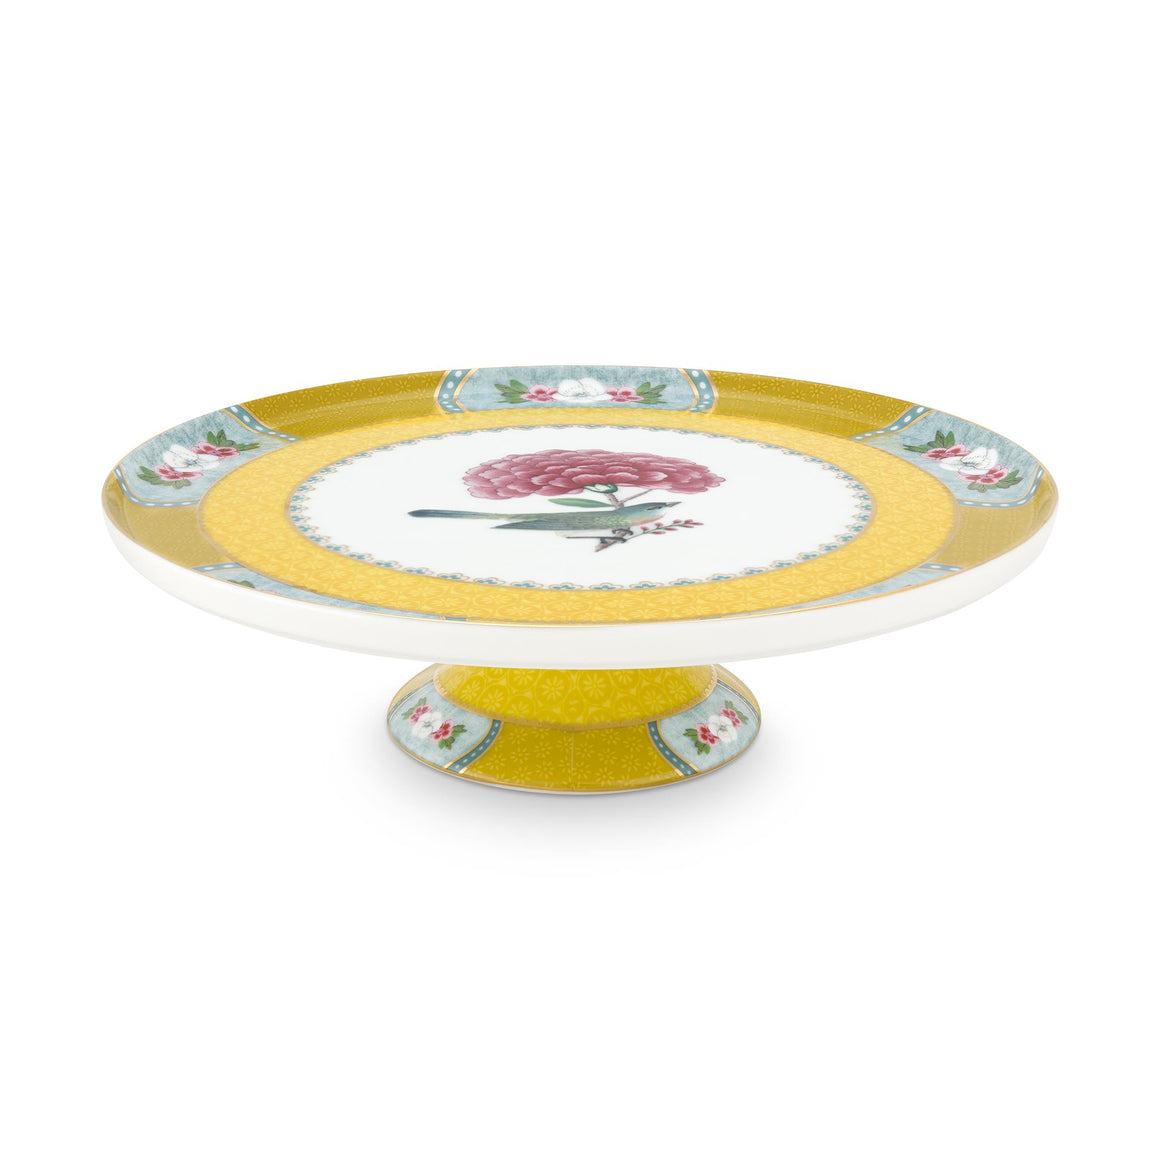 Blushing Birds Mini Cake Stand, Yellow, 21 cm